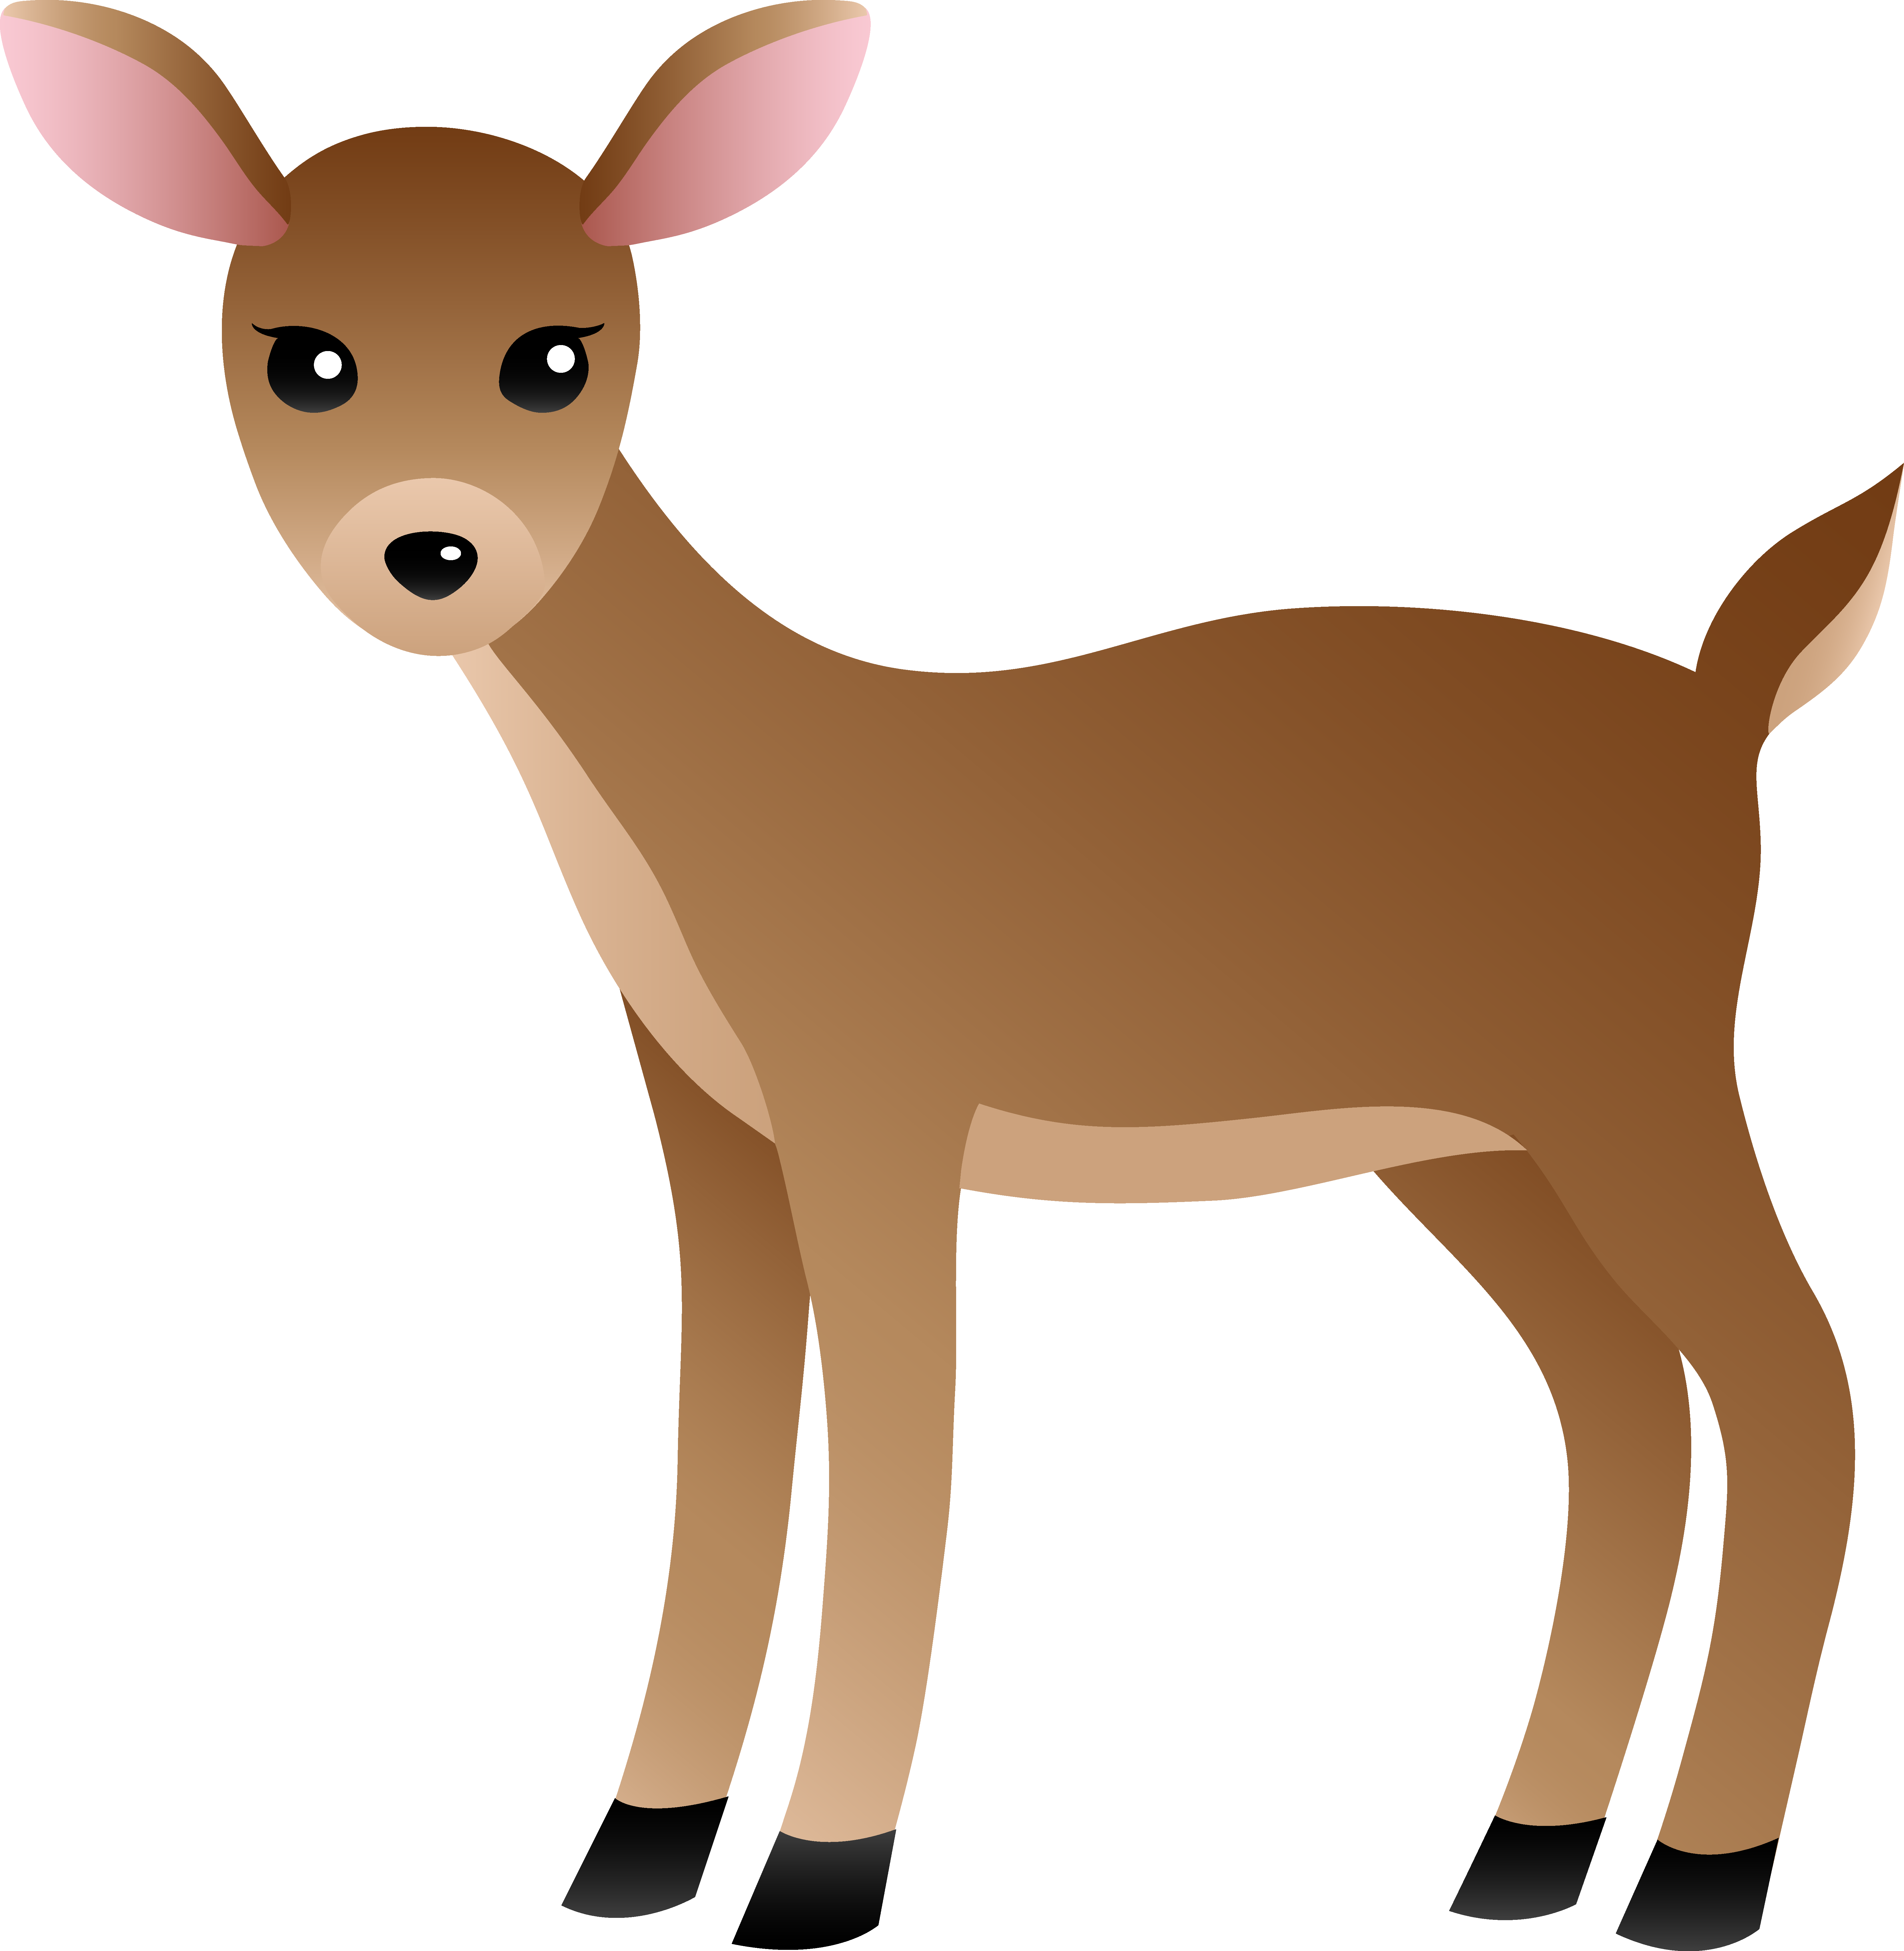 Mammal drawing fawn. Cartoon deer clipart